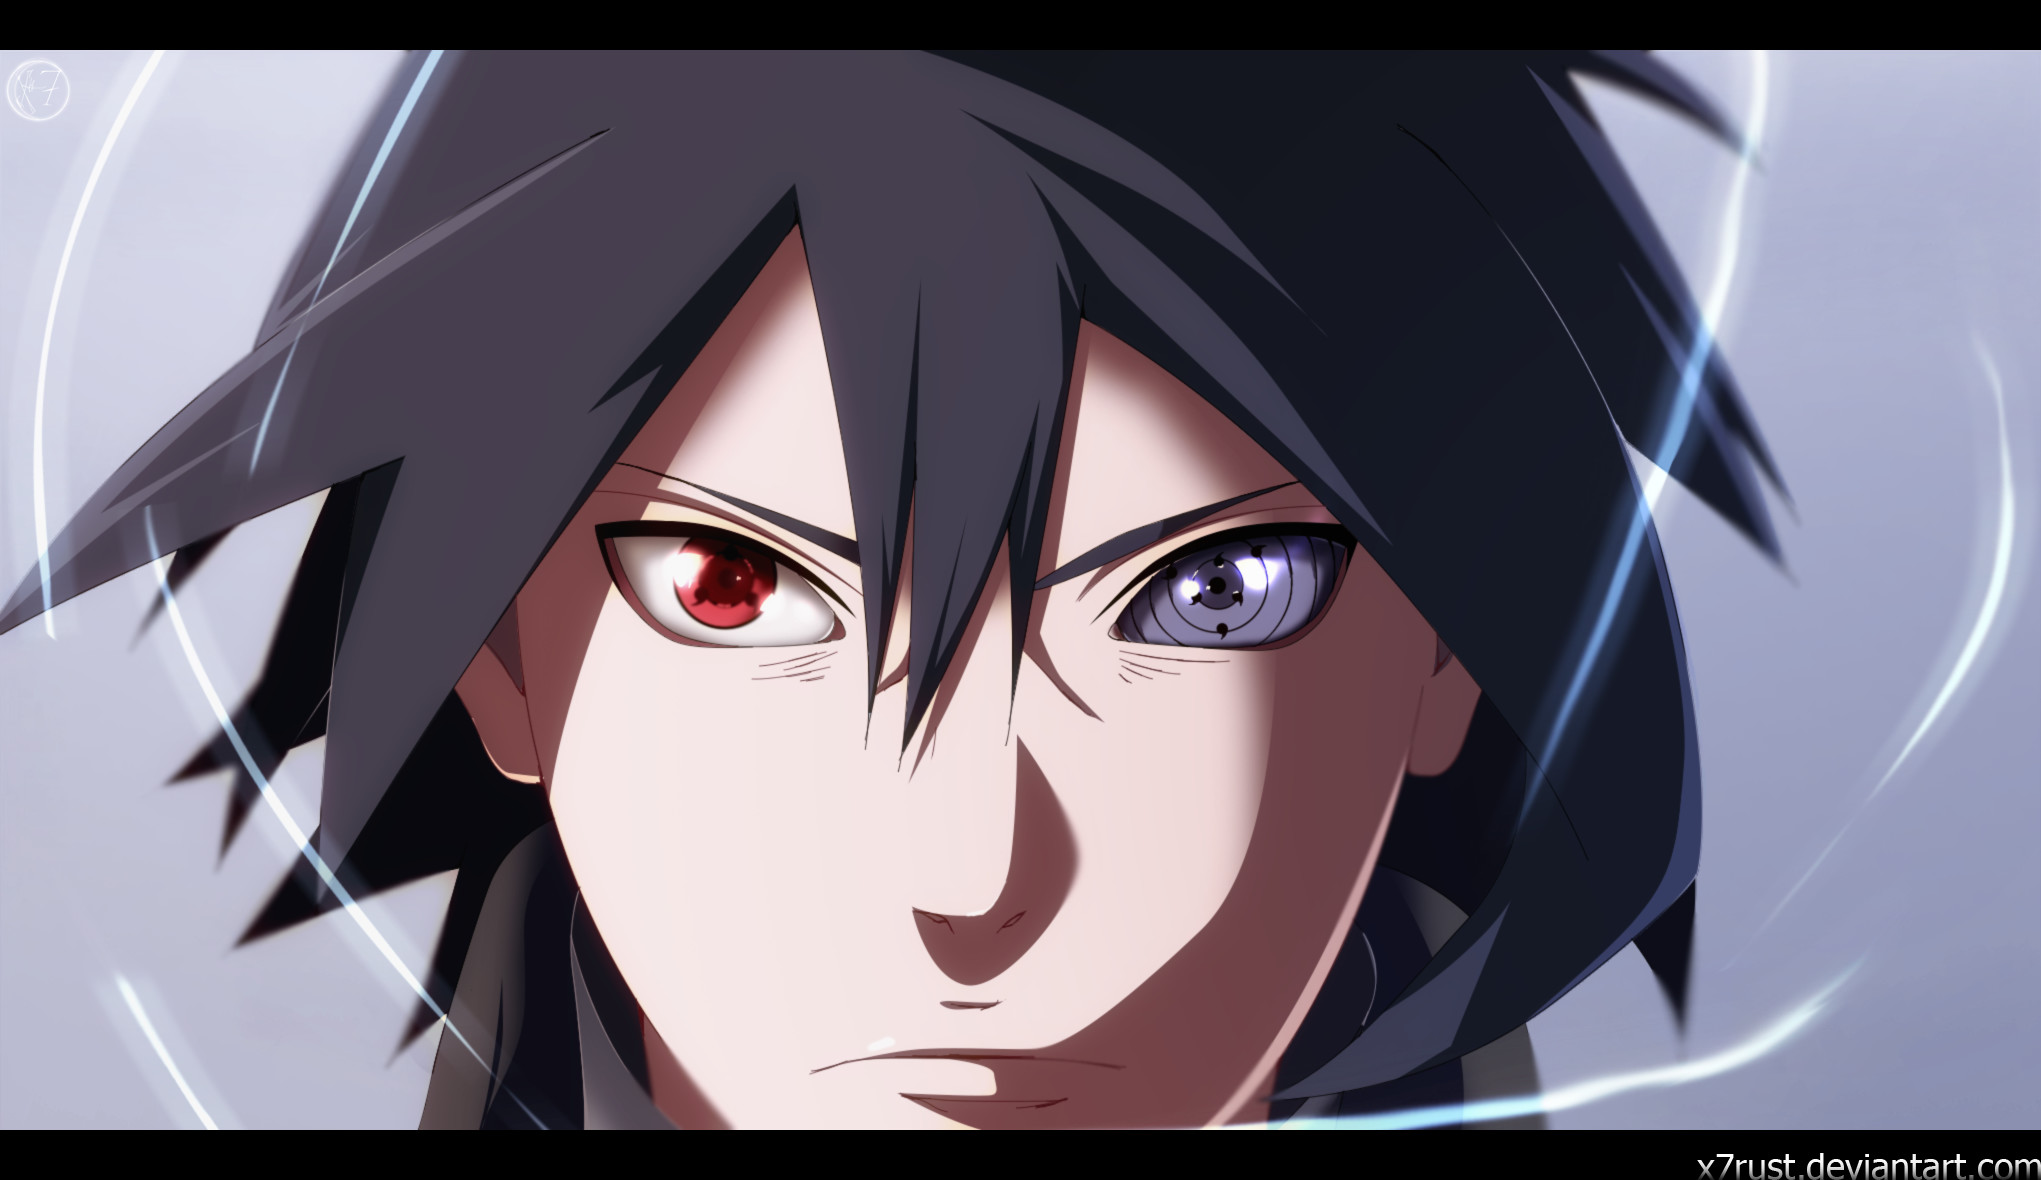 Sasuke uchiha rinnegan wallpaper 63 images 2041x1180 hd wallpaper background id605504 voltagebd Image collections